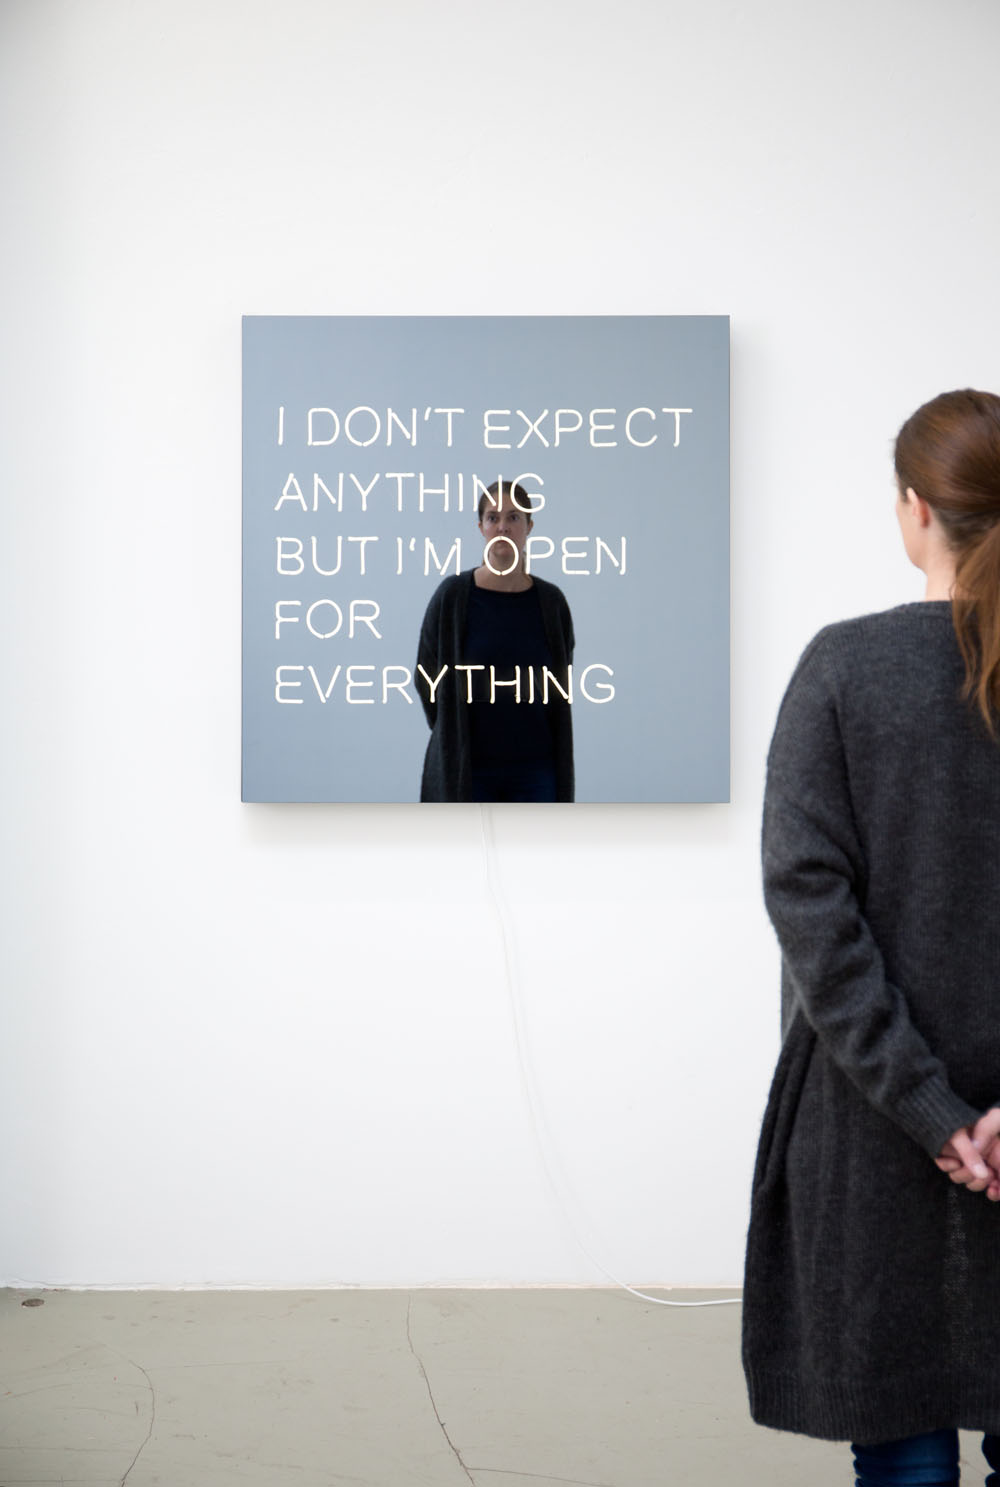 Jeppe Hein: I DON'T EXPECT ANYTHING BUT I AM OPEN FOR EVERYTHING, 2014 Foto: Studio Jeppe Hein, © Jeppe Hein